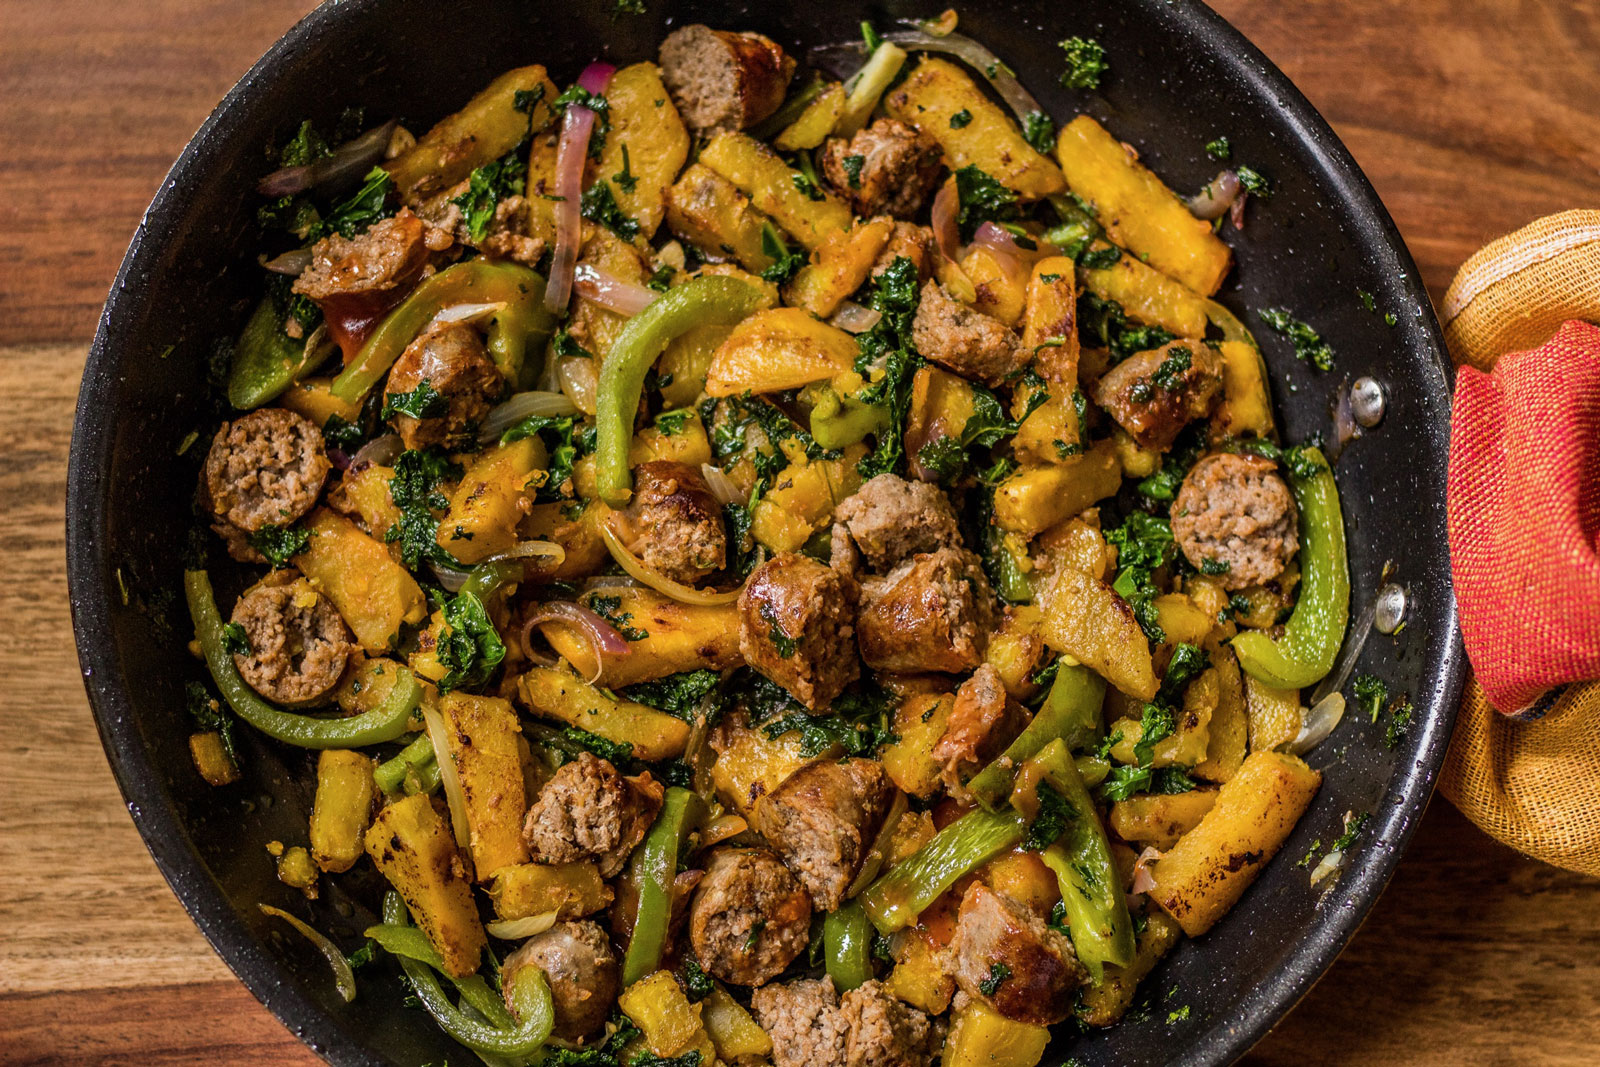 Rosemary sage sweet potato kale and sausage hash